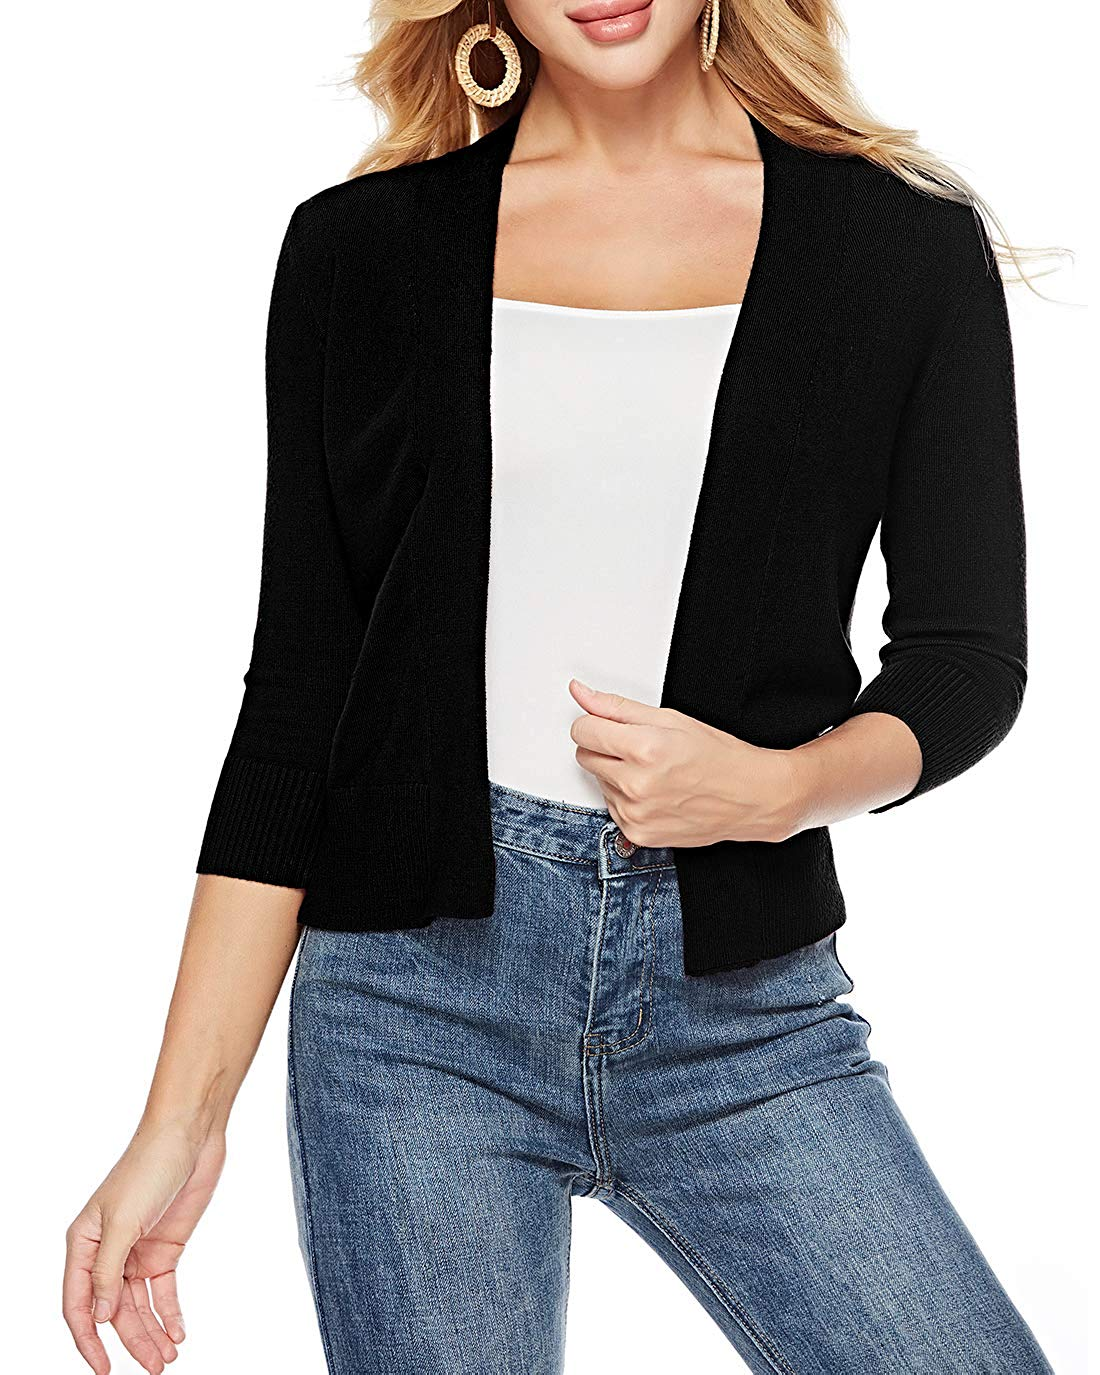 3ebce87ebc Get Quotations · Sarin Mathews Womens 3 4 Sleeve Open Front Cropped Short  Knit Cardigan Sweaters